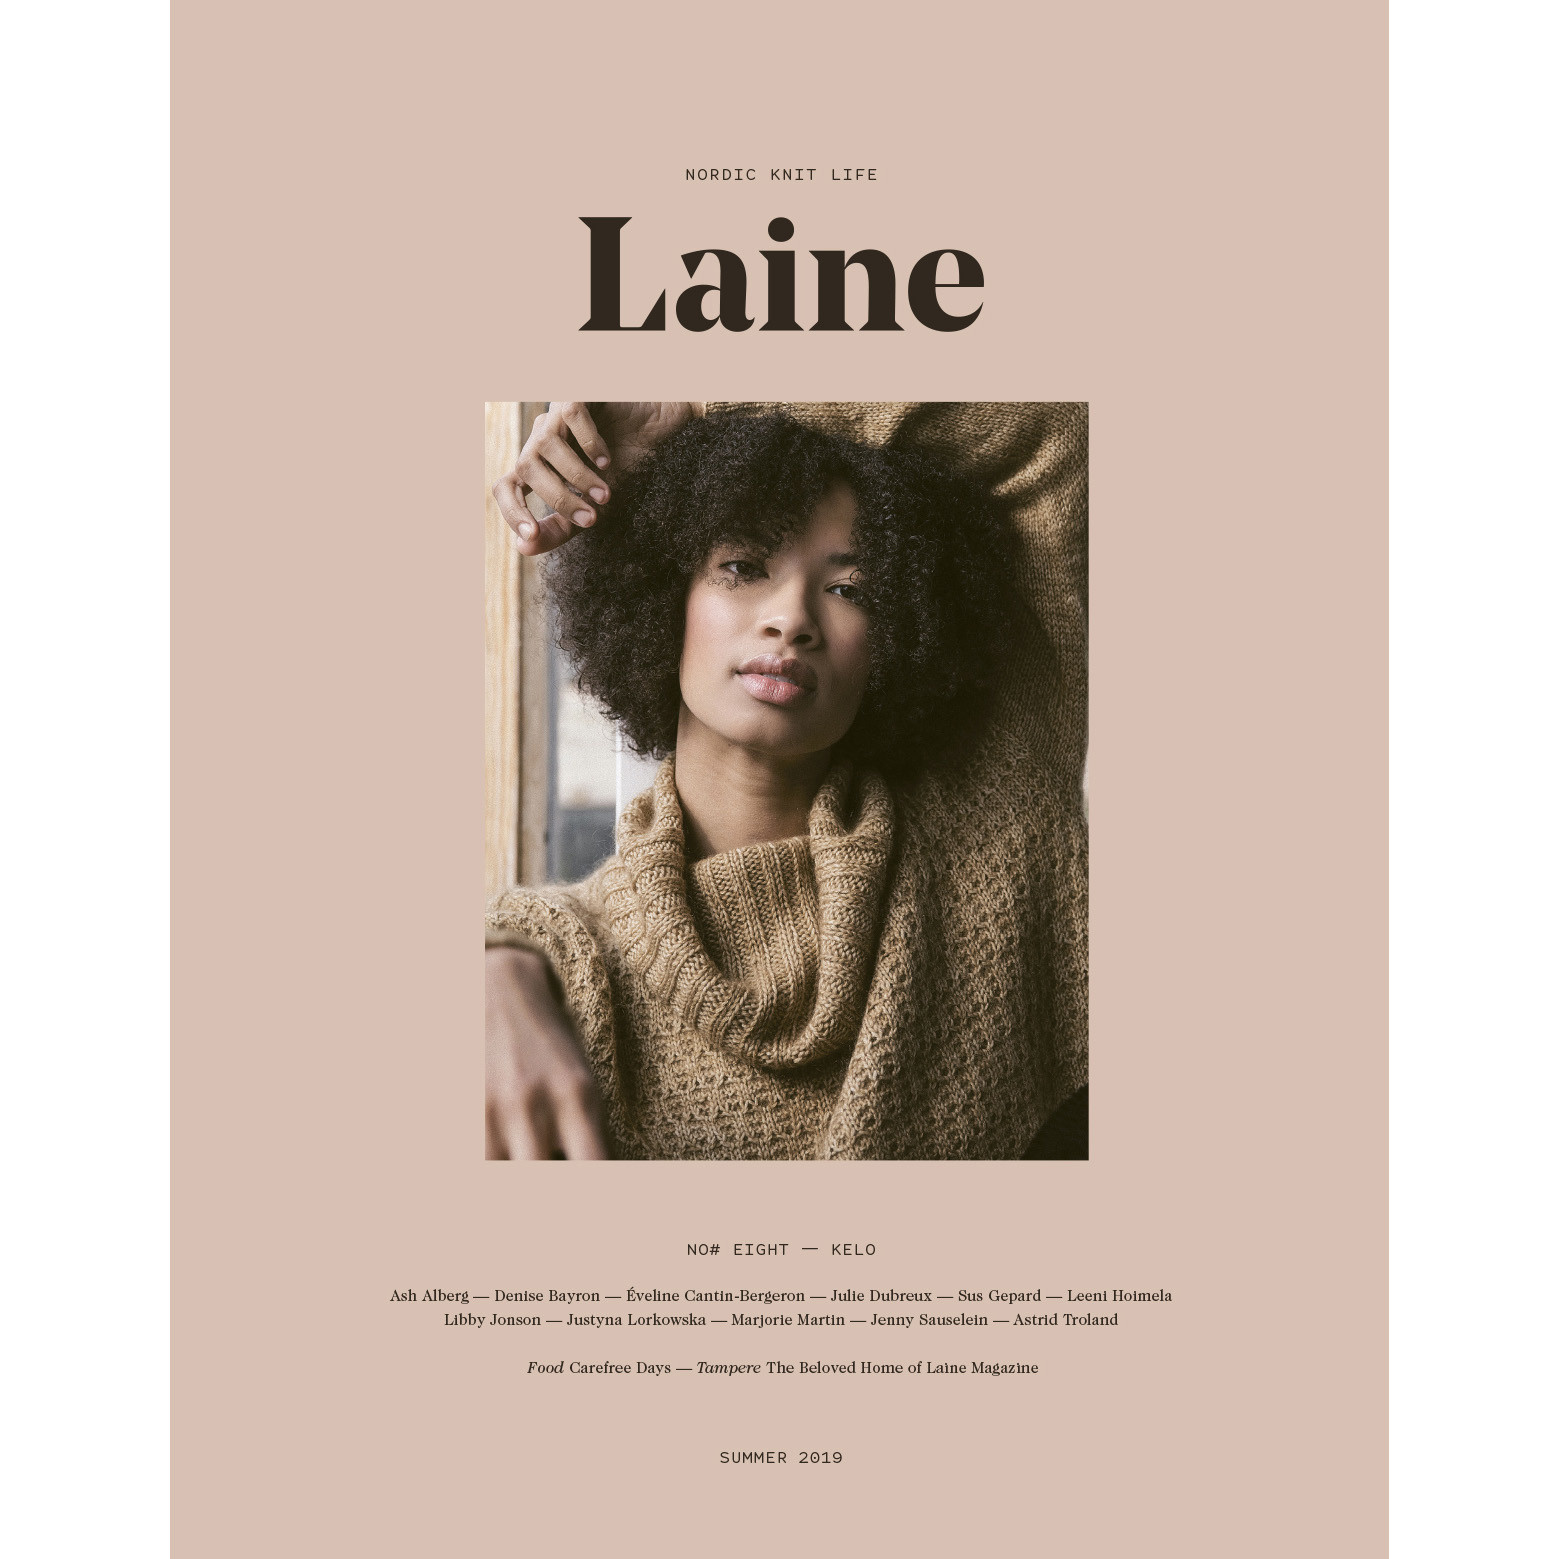 Laine LAINE NORDIC KNIT LIFE ISSUE 8